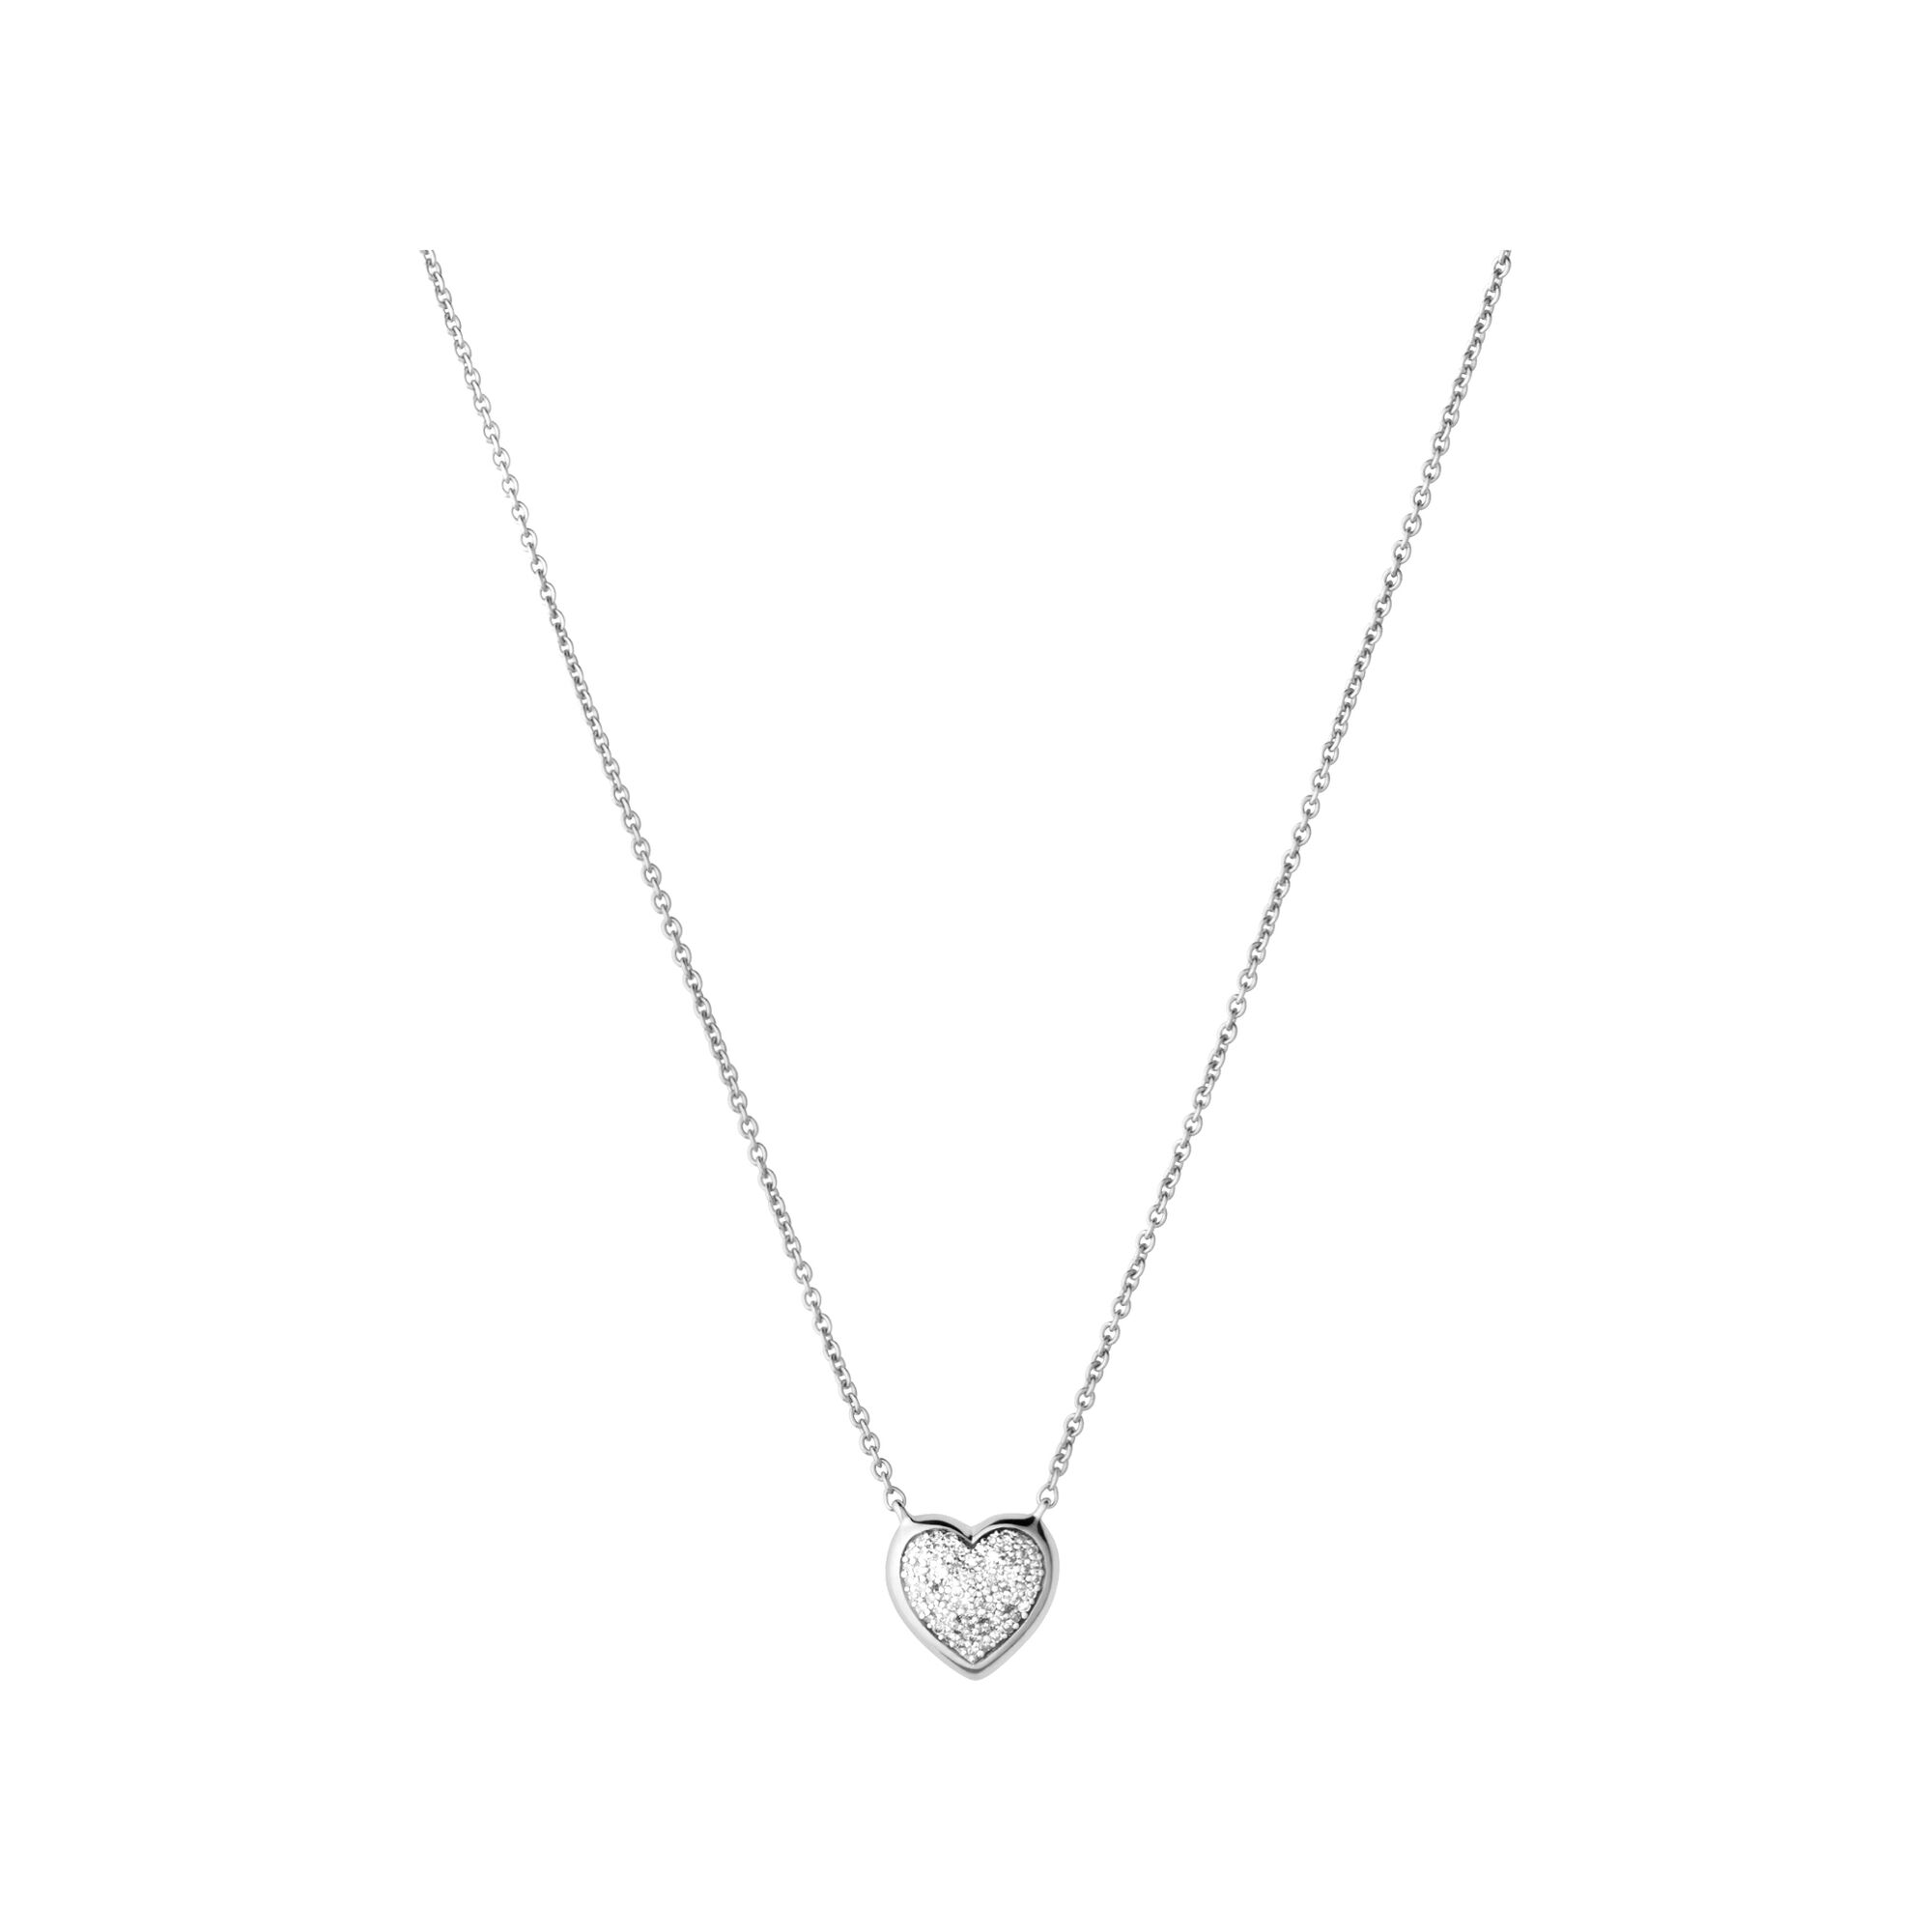 silver necklace jewelry plated sterling copy pendant jewellery goldheart products gold by heart papac of seth rough the x